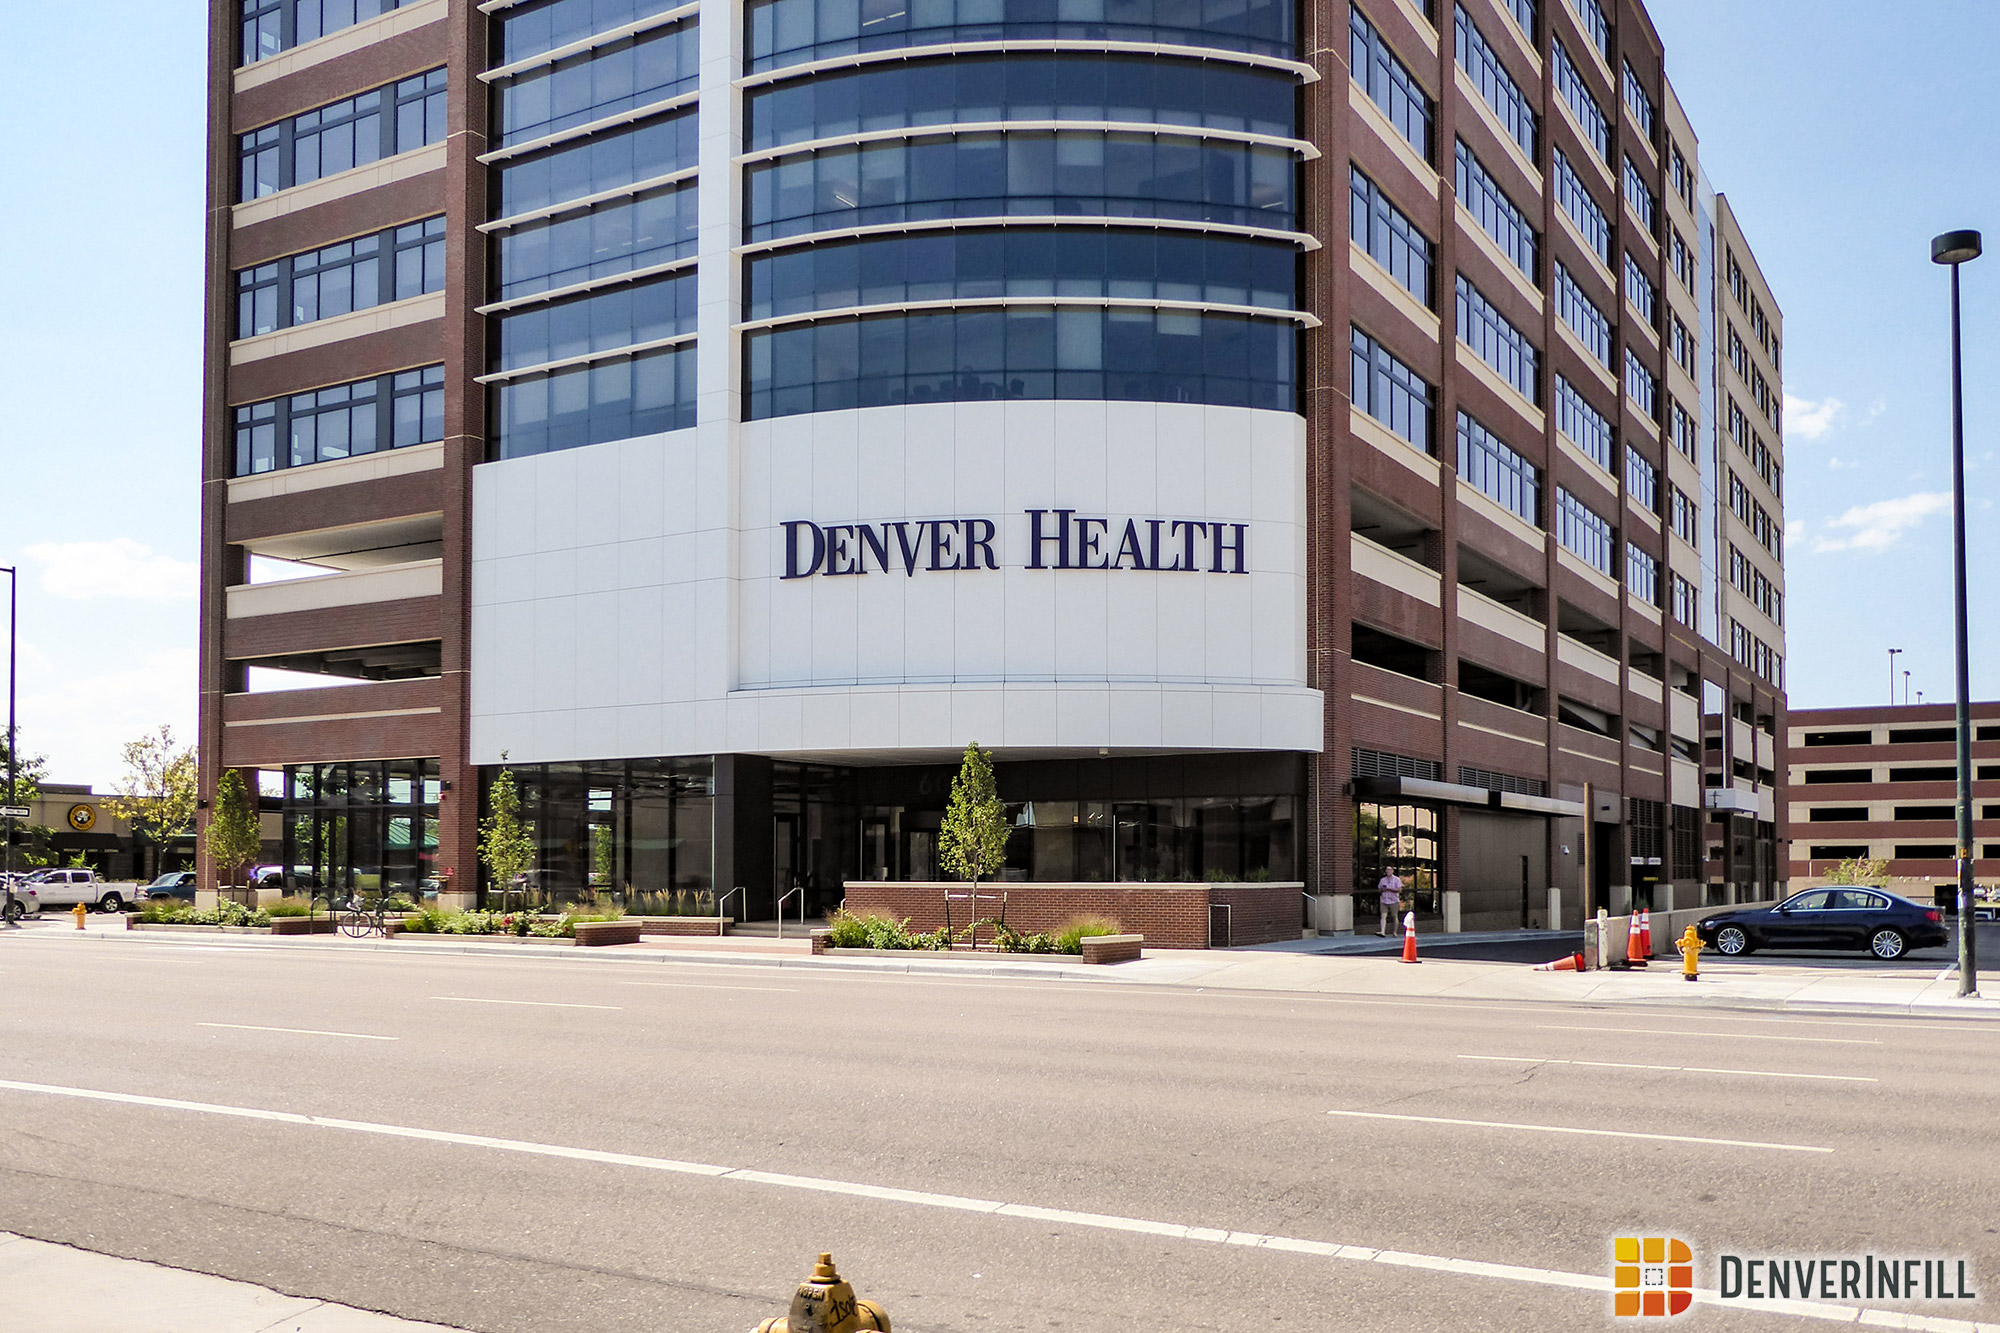 Denver Health Support Services on Broadway